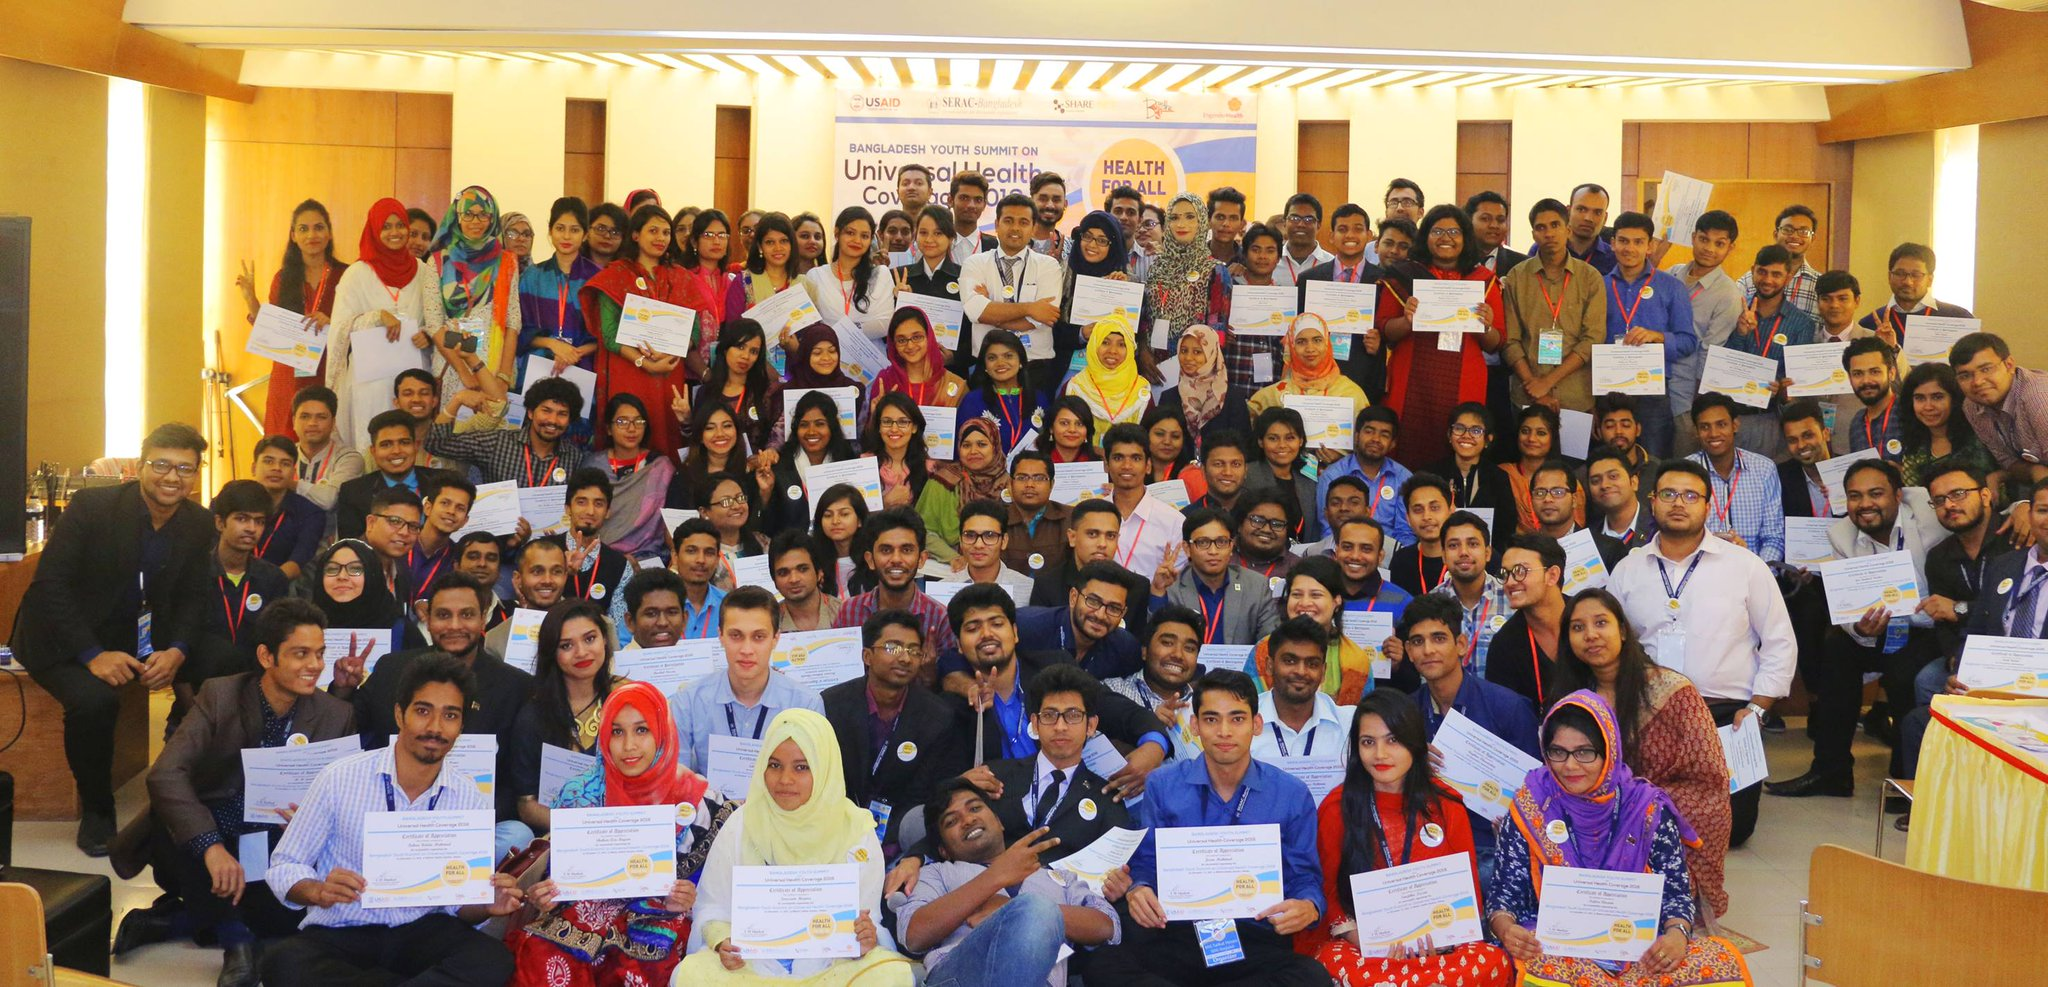 Yesterday @SERAC_BD hosted the first-ever Bangladesh Youth Summit on #UHC, where 150 young leaders gathered to discuss #HealthForAll! https://t.co/0hfYXtdh8Q